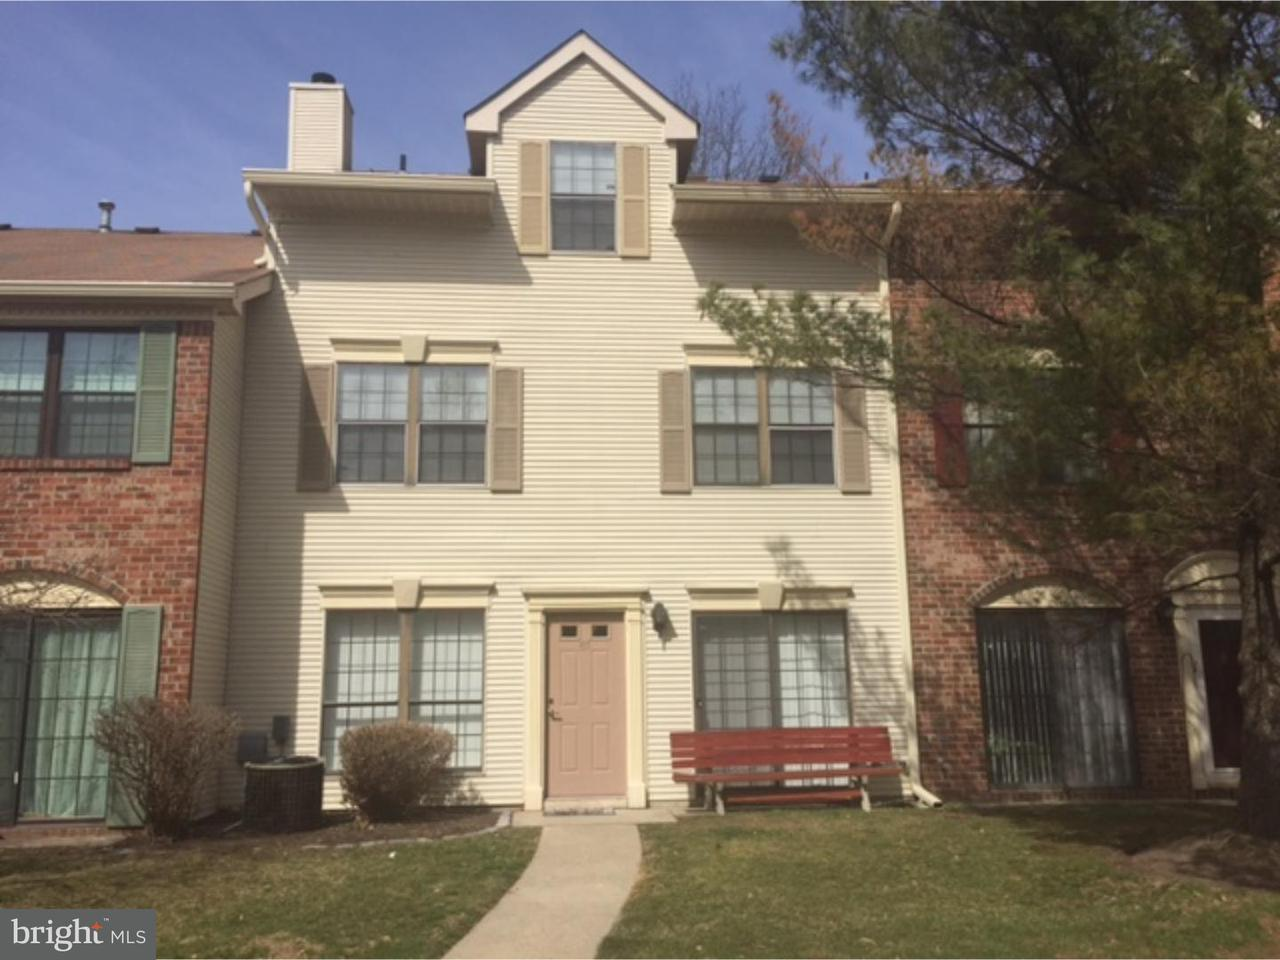 Condominium for Rent at 67 DREWES Court Lawrenceville, New Jersey 08648 United StatesMunicipality: Lawrence Township